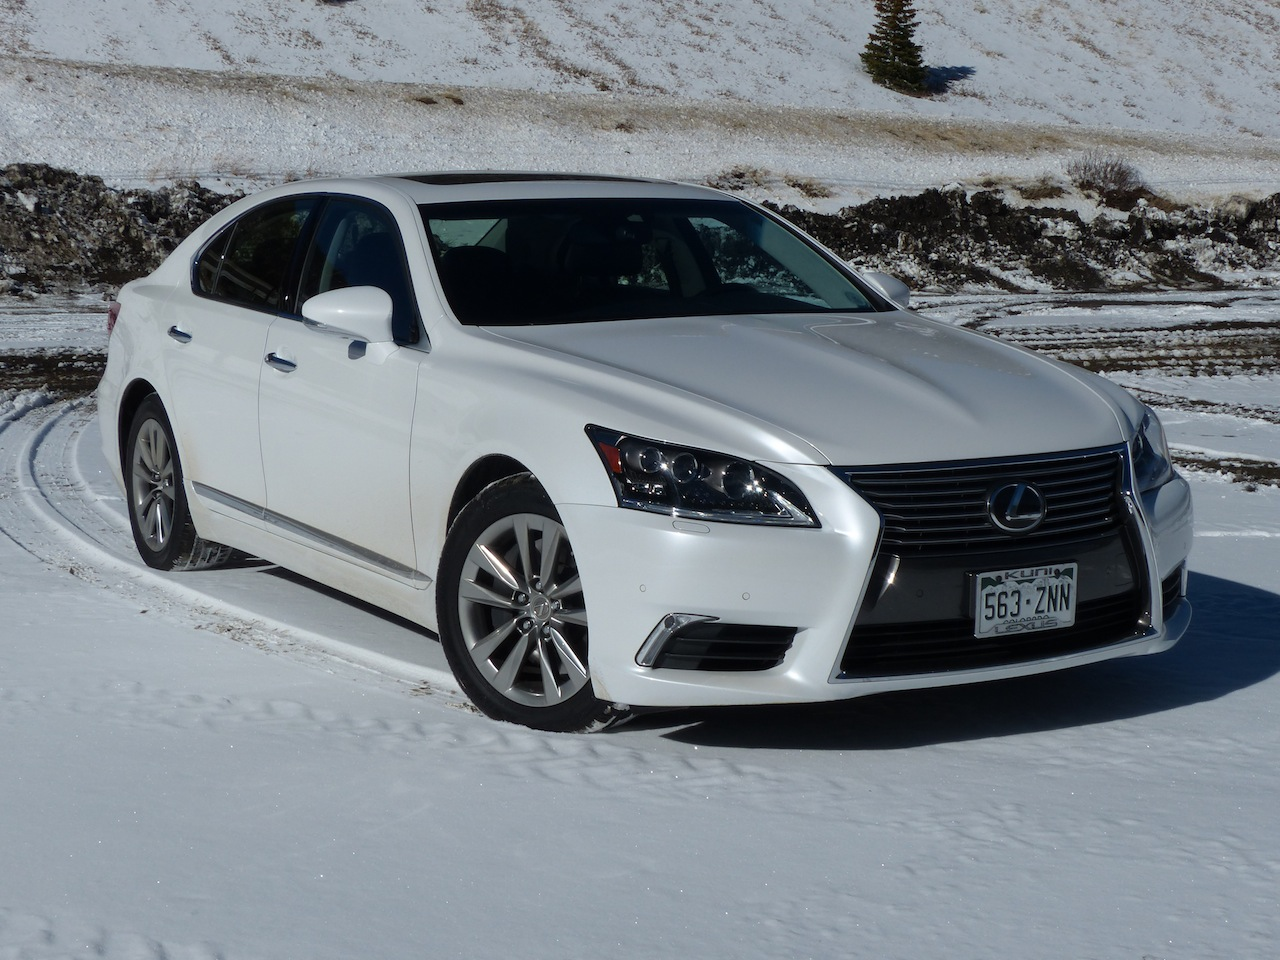 2014 lexus ls 460 information and photos momentcar. Black Bedroom Furniture Sets. Home Design Ideas